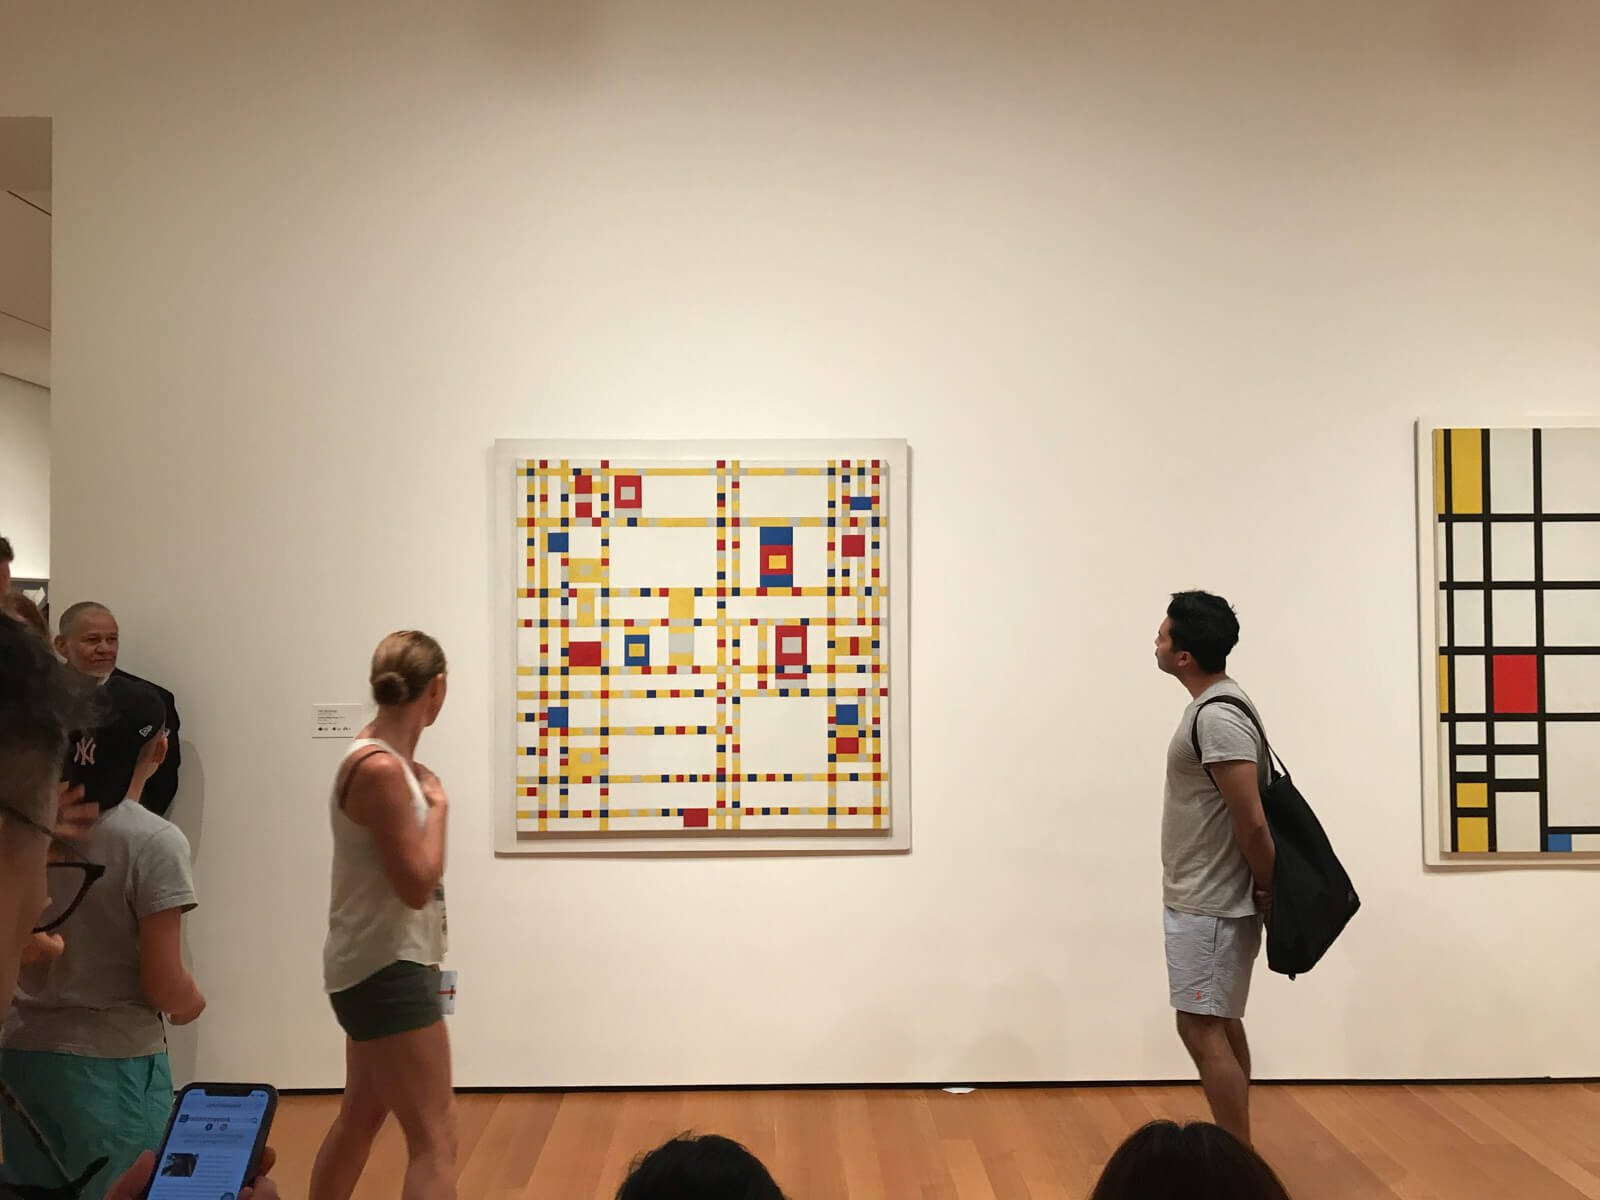 The inside of an art gallery with a geometric-style artwork of a Mondrian grid on the wall. Some people can be seen looking at it from the sides